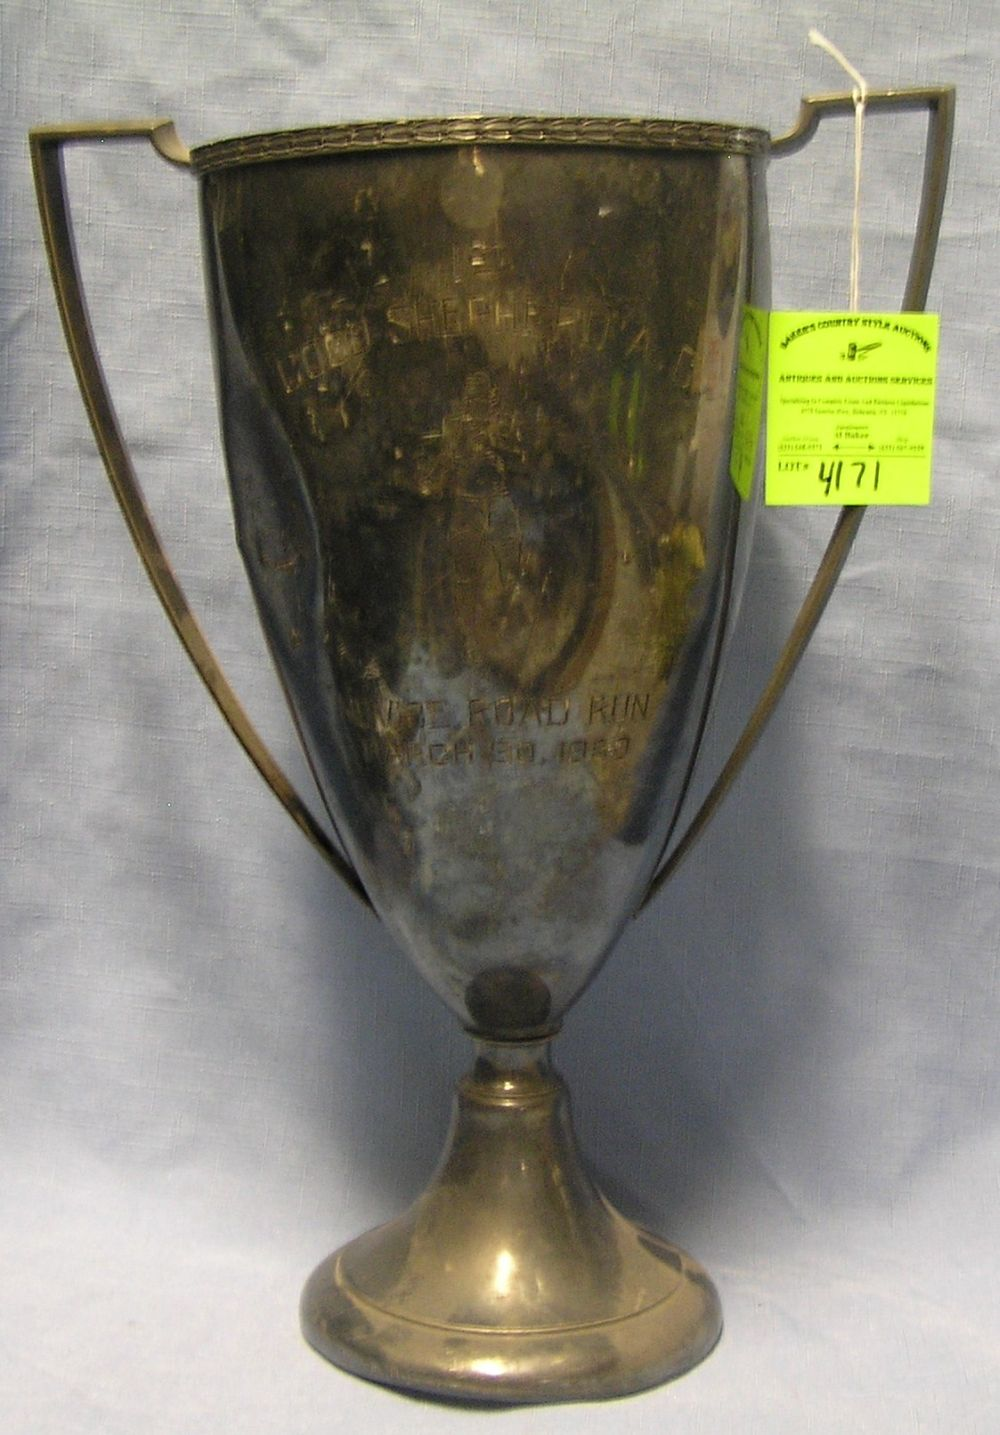 ANTIQUE SILVER PLATED PRESENTATION TROPHY